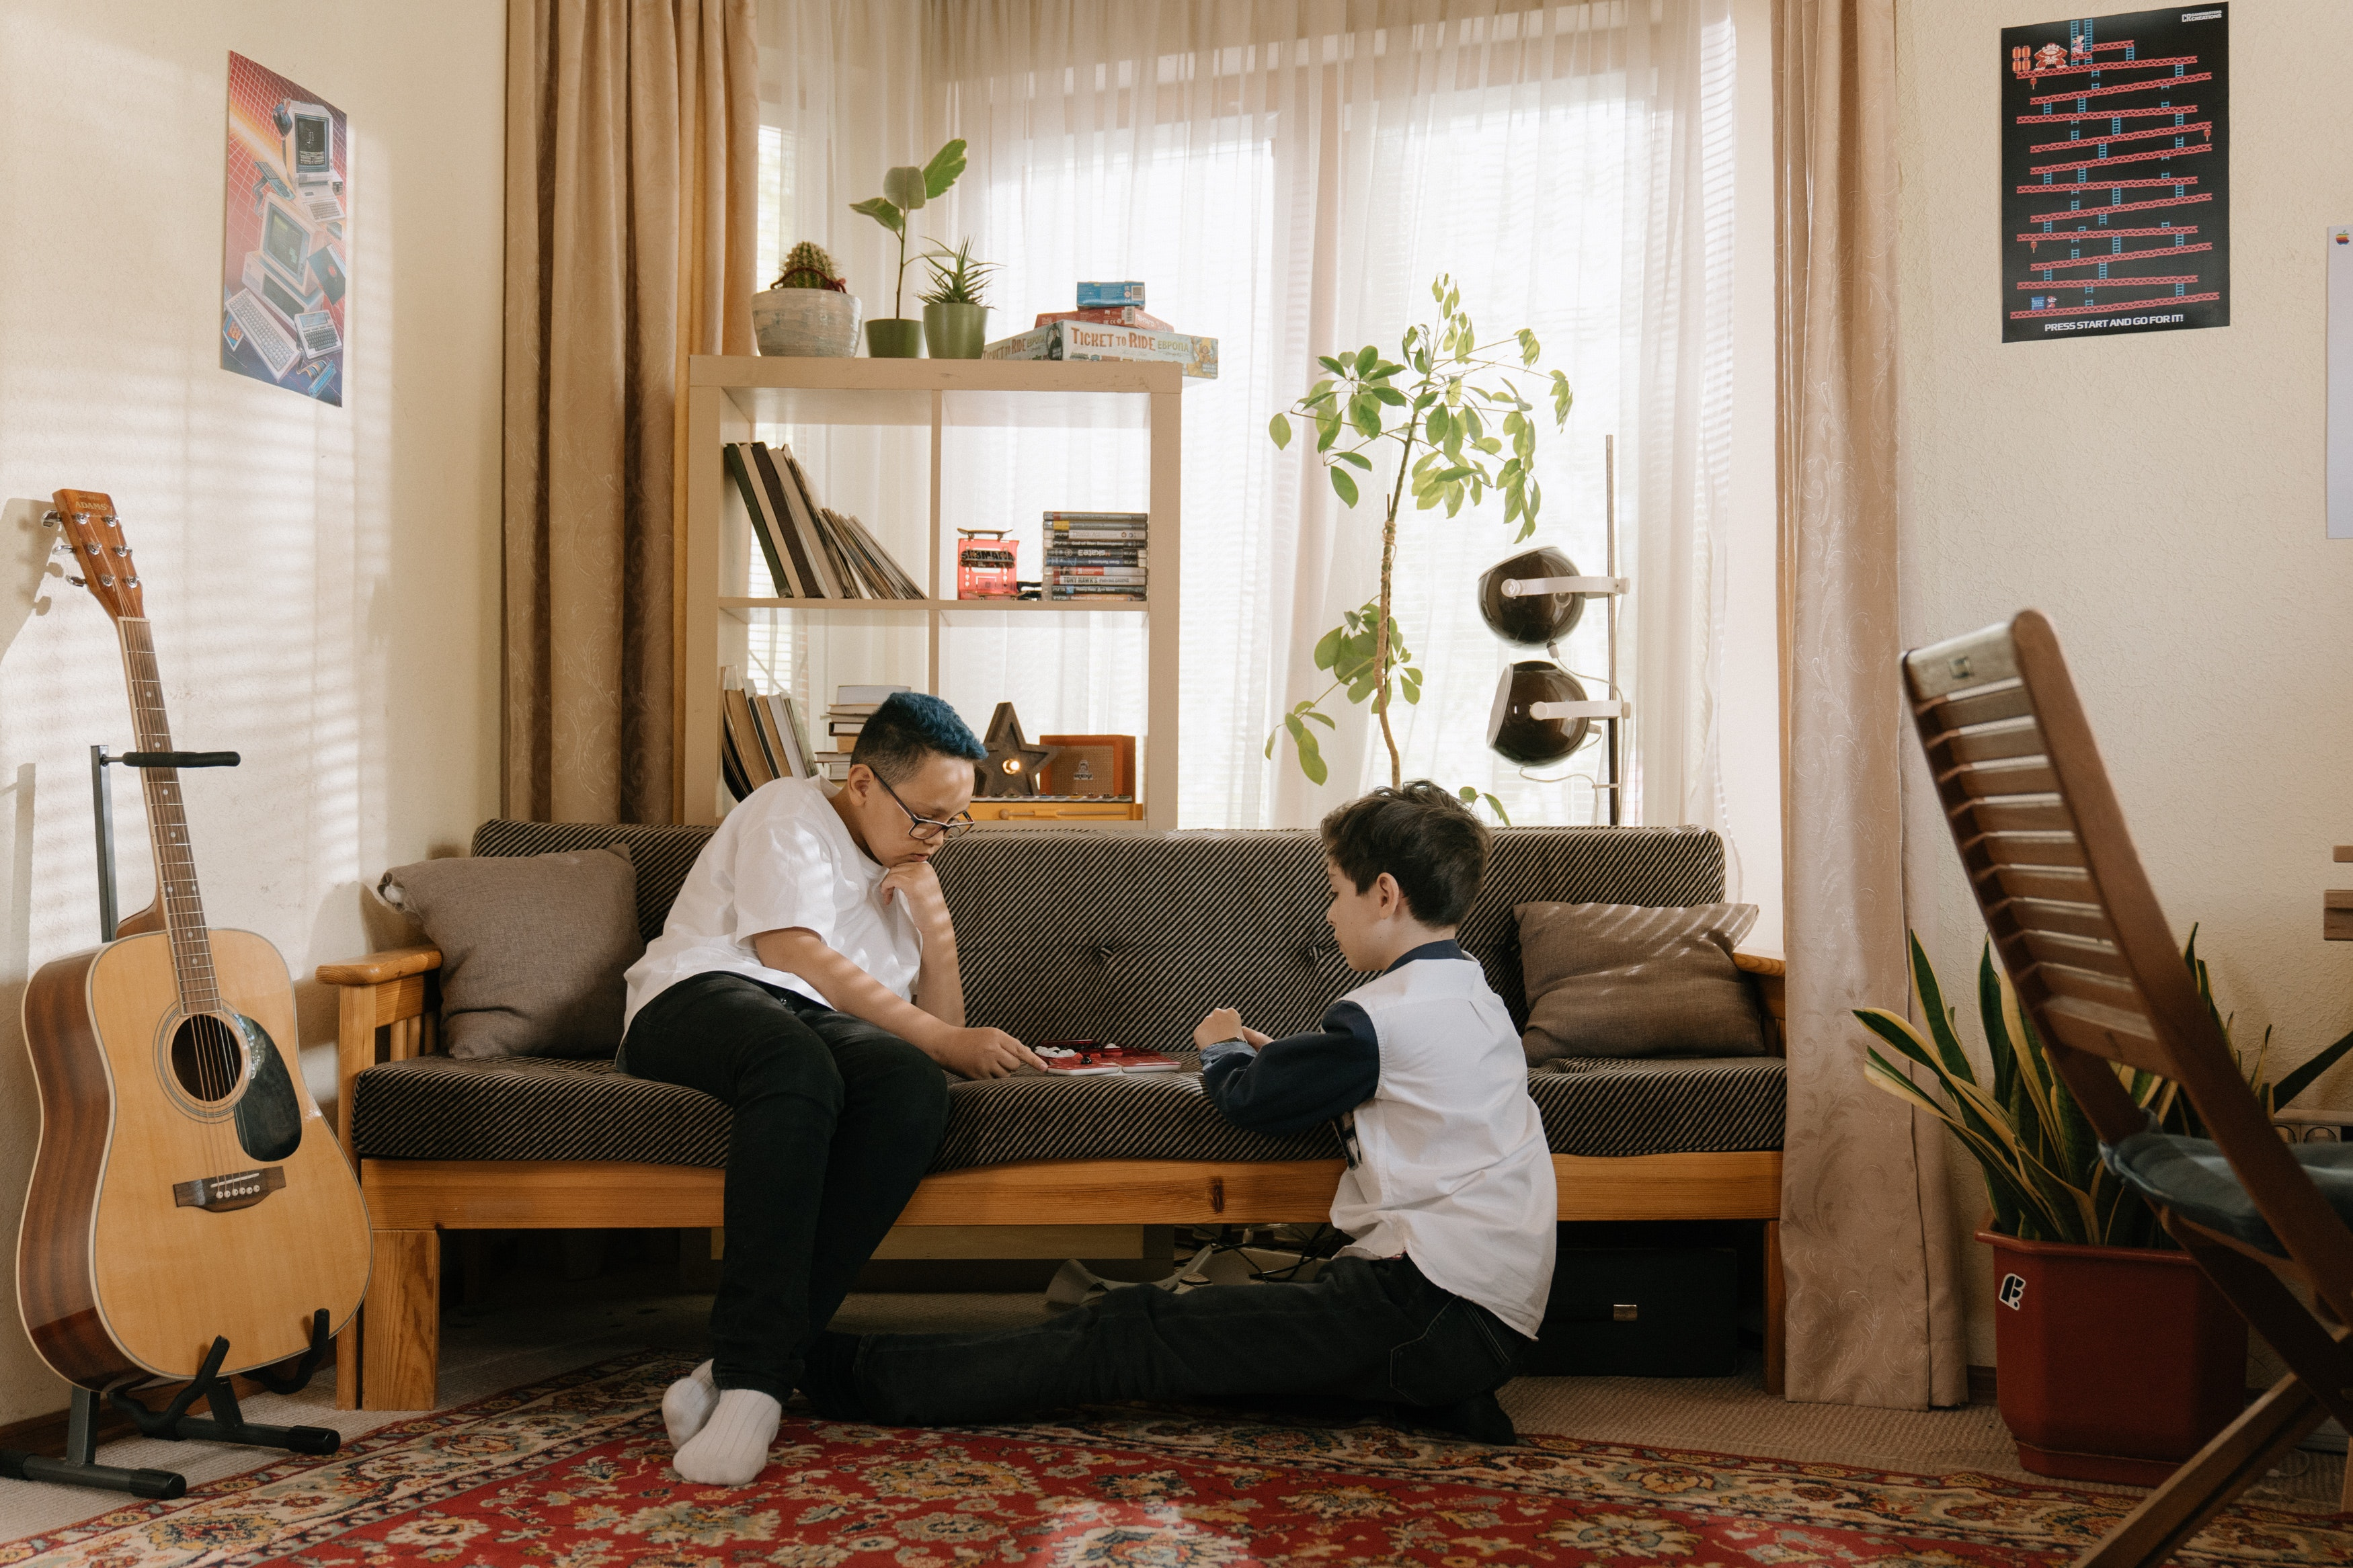 Two children at home playing. | Photo: Pexels